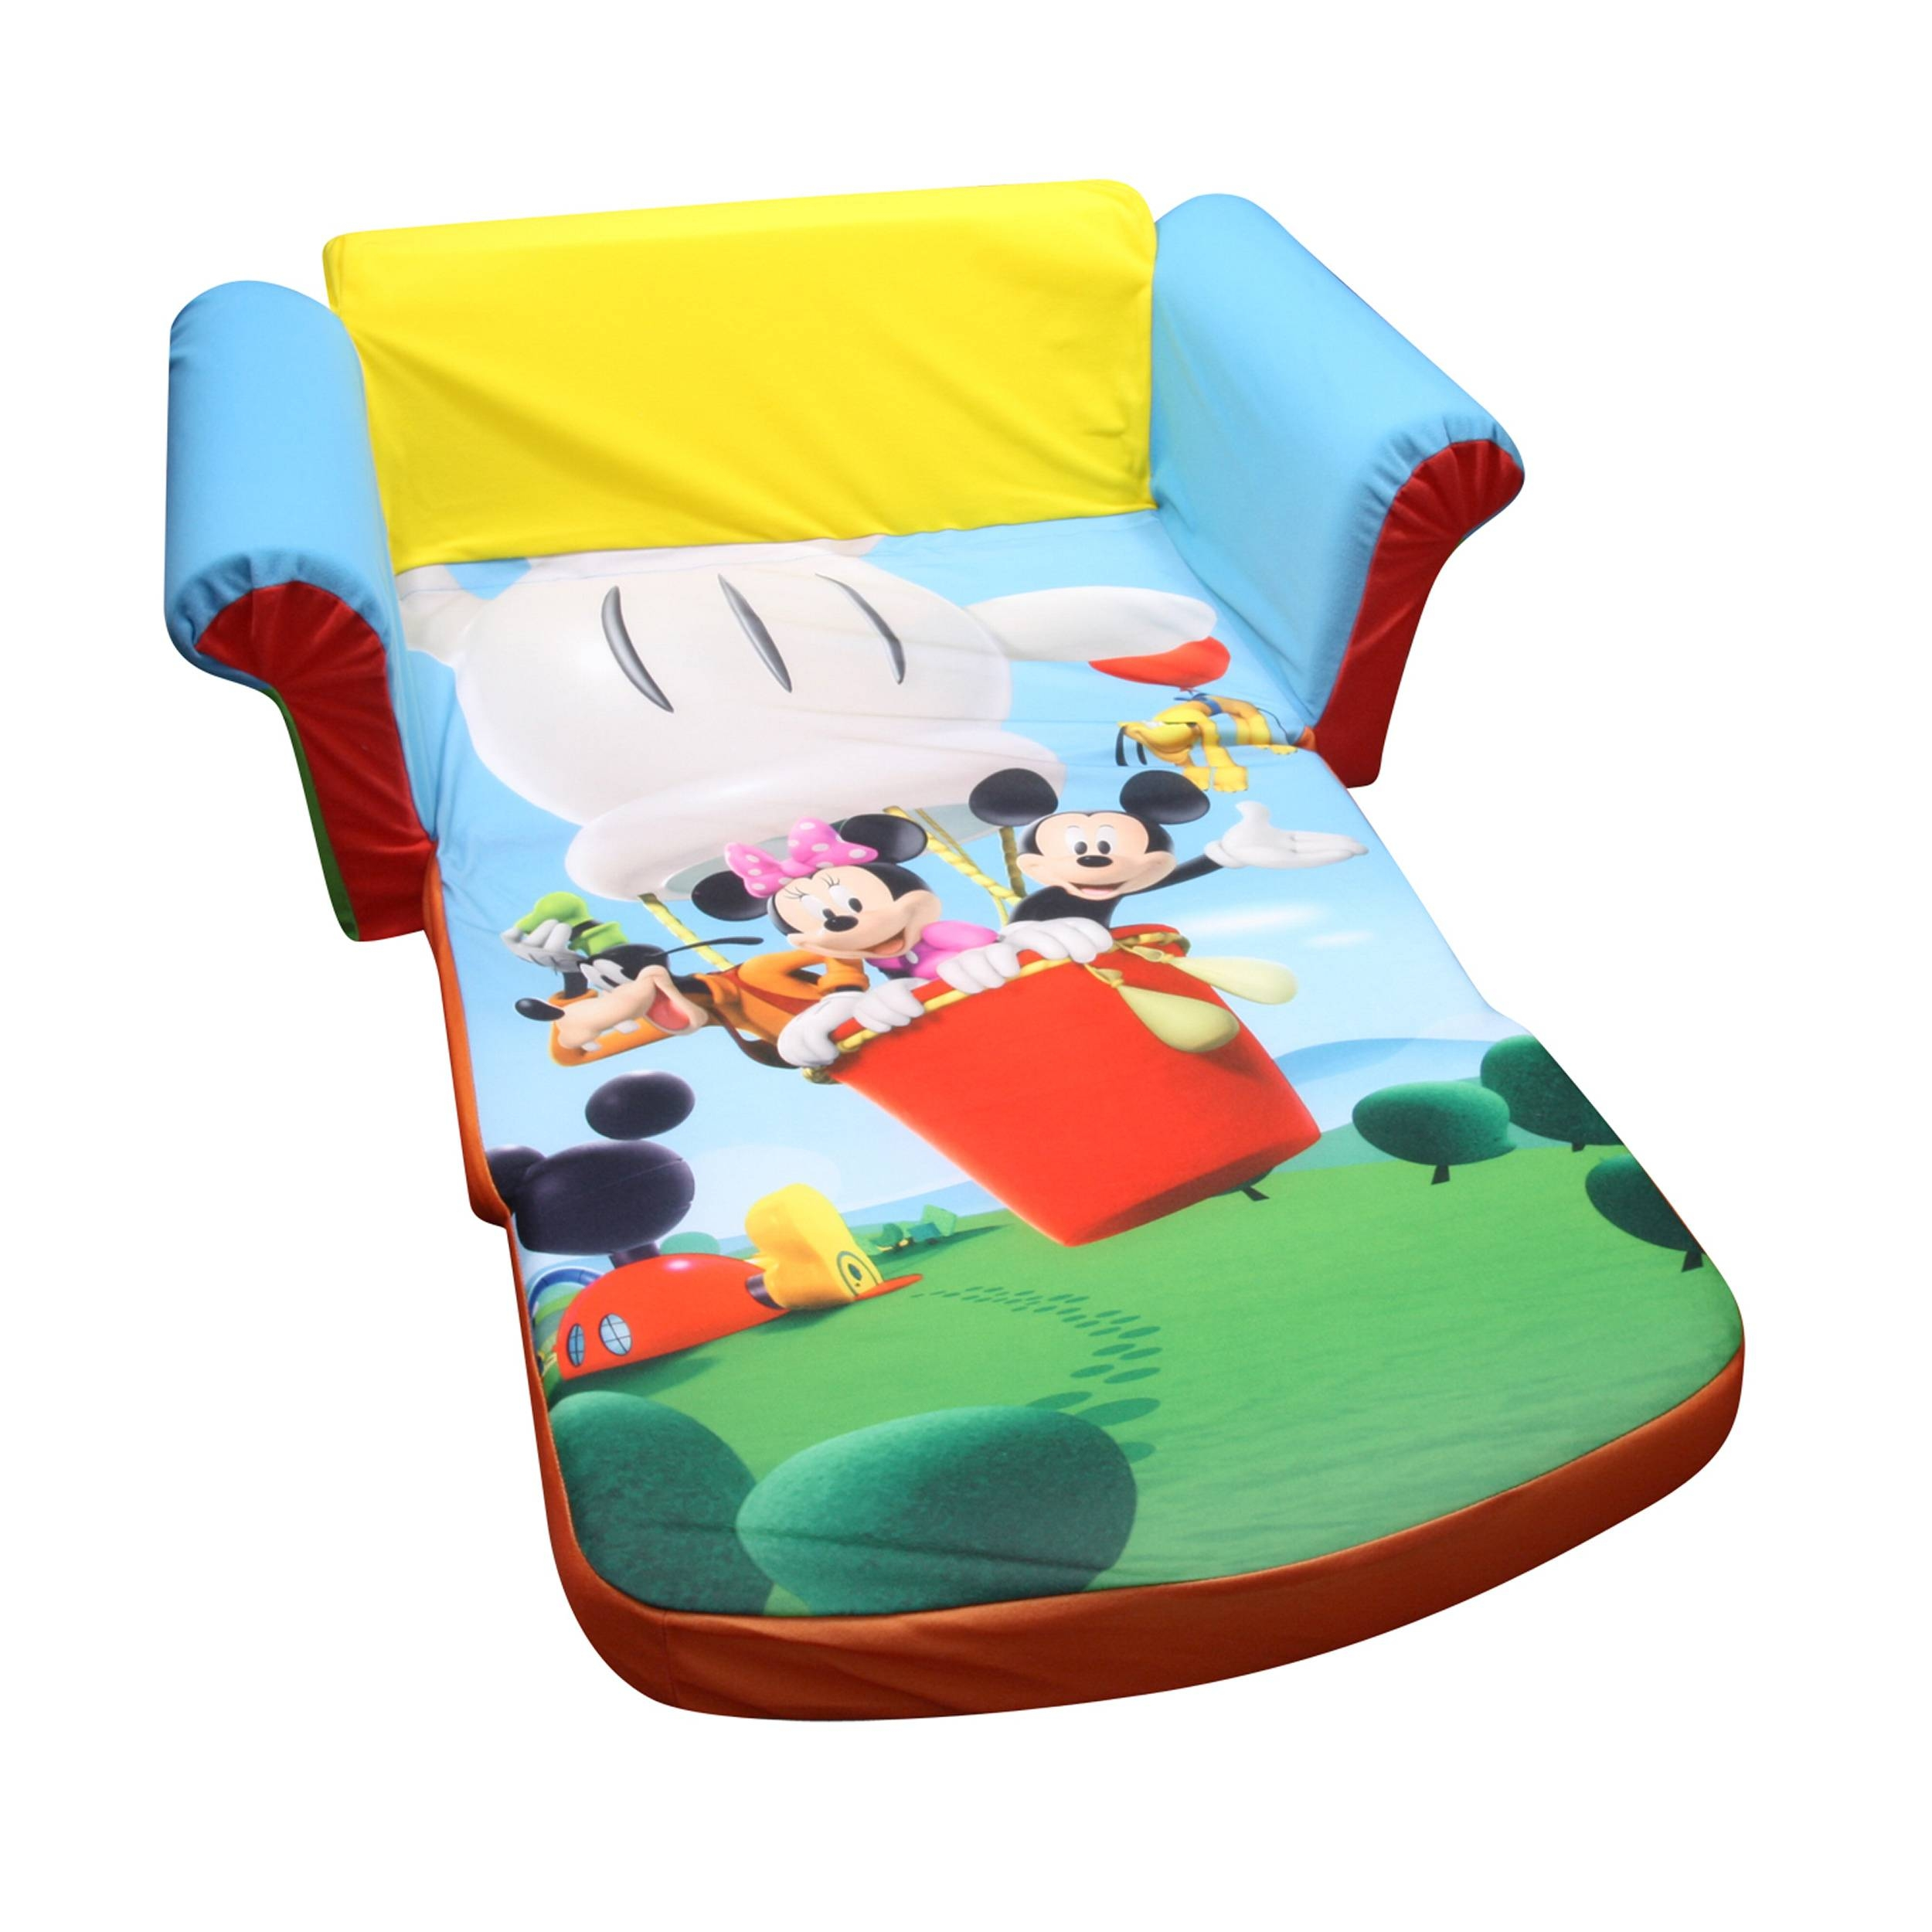 Marshmallow Furniture, Children's 2 In 1 Flip Open Foam Sofa with regard to Mickey Mouse Clubhouse Couches (Image 5 of 15)